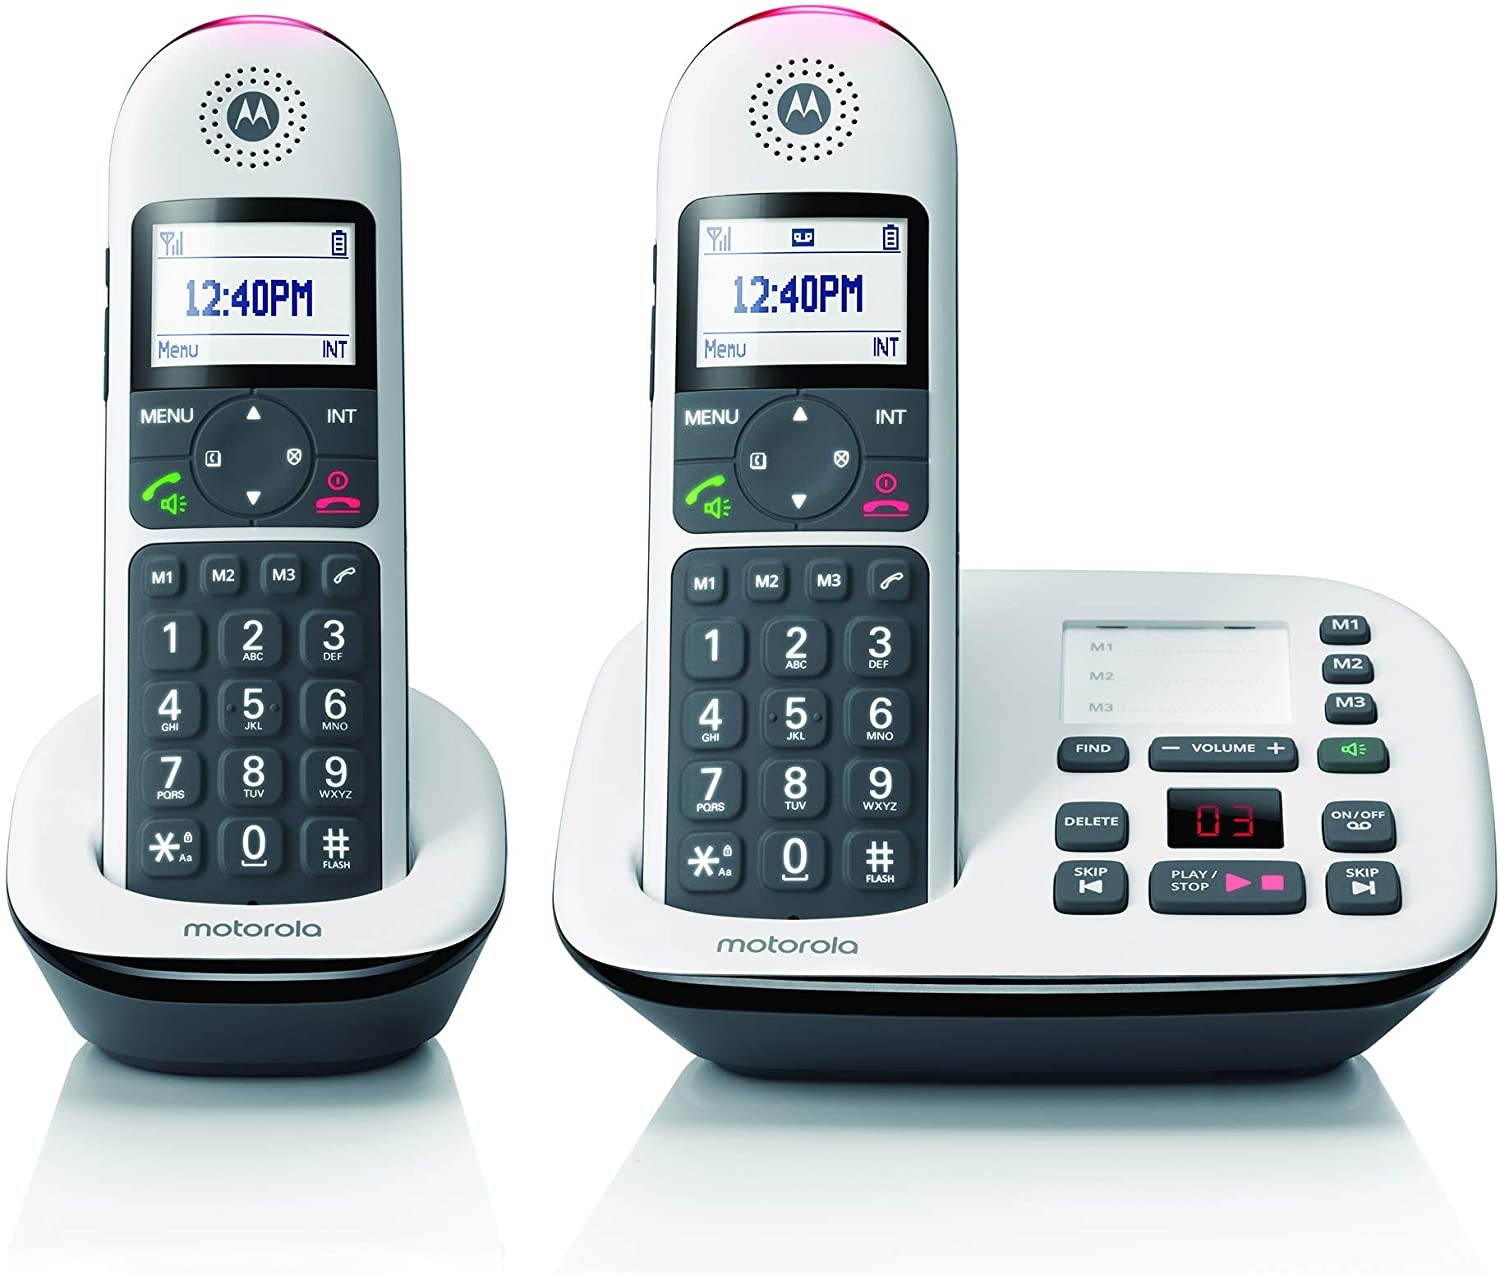 Motorola CD5012 DECT 6.0 Cordless Phone with Answering Machine, Call Block and Volume Boost, White, 2 Handsets